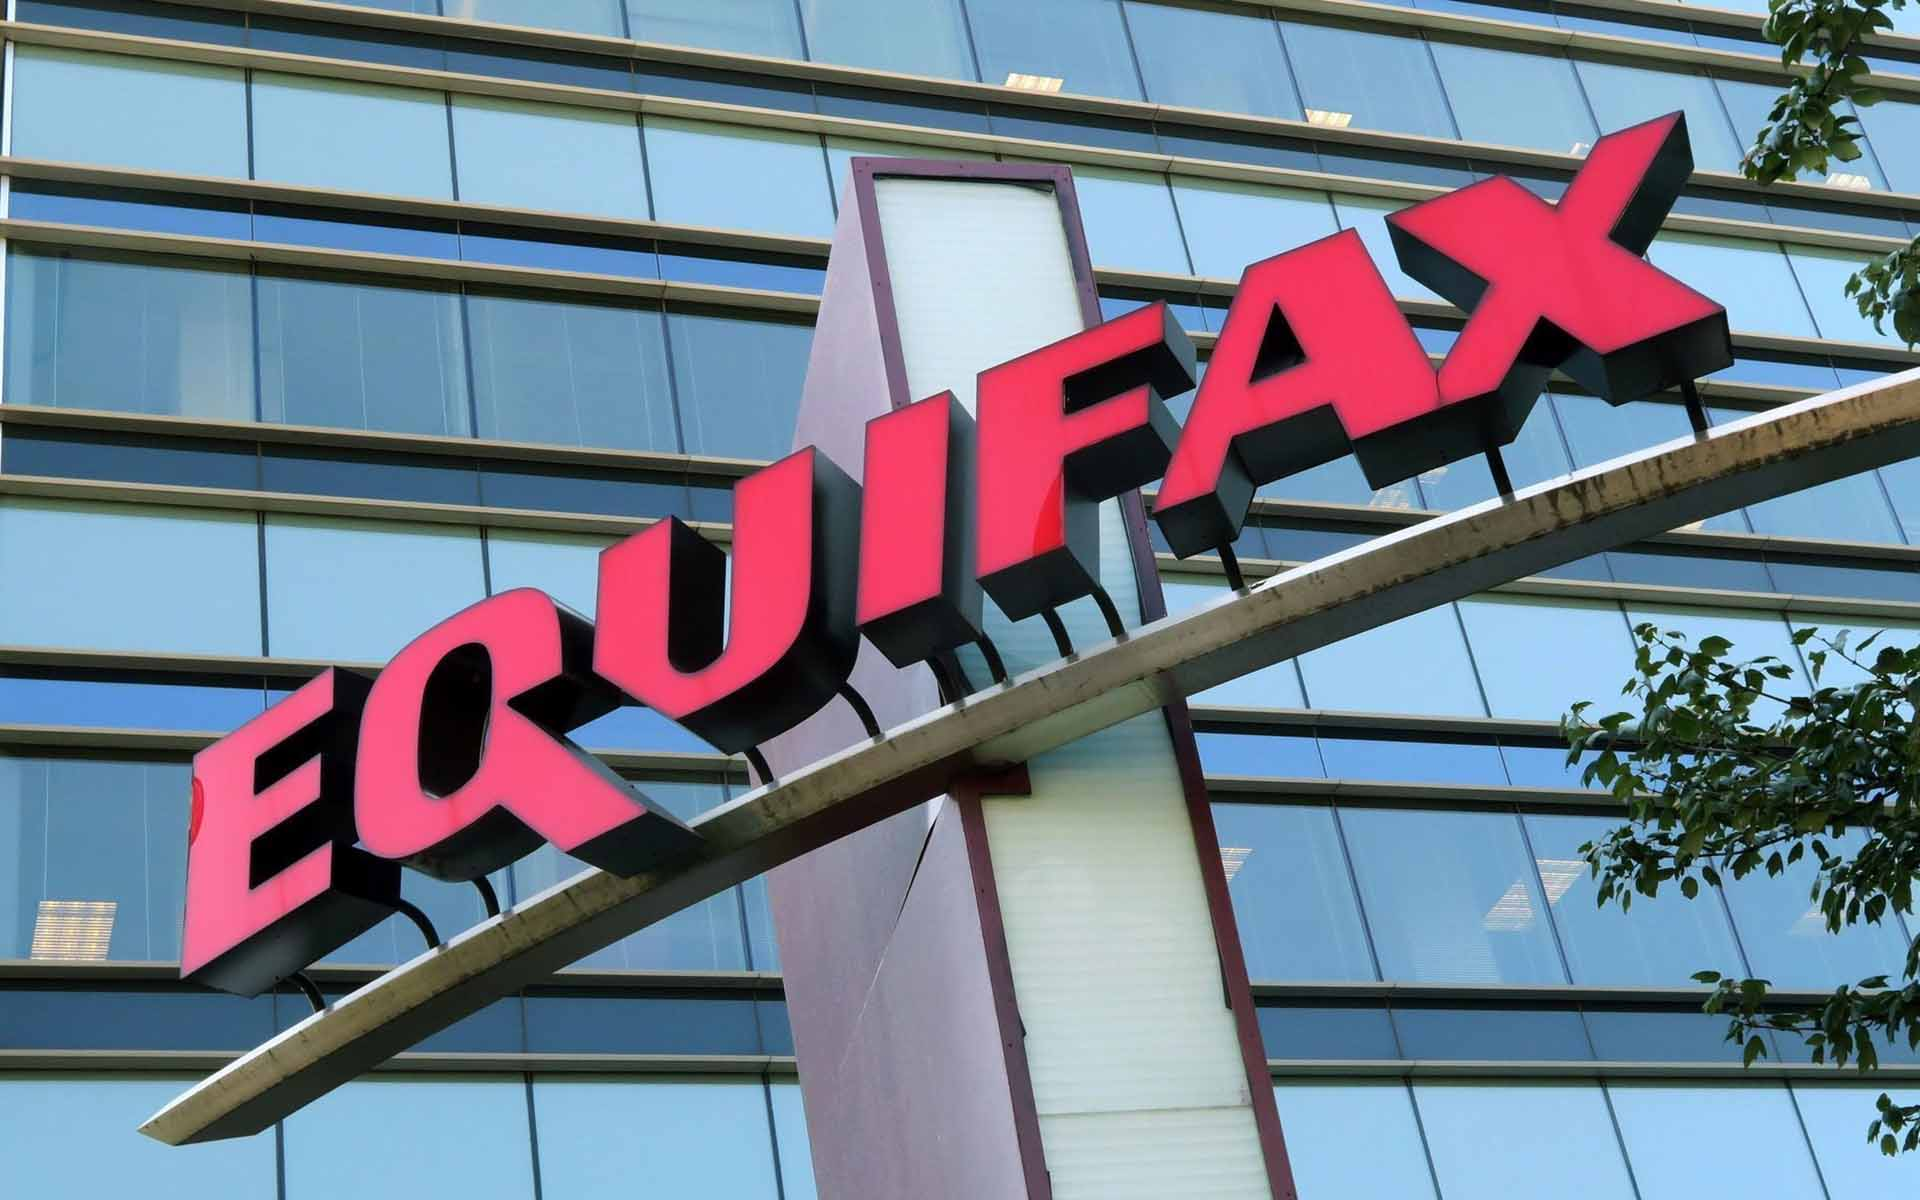 Equifax Data Breach Opens Door for Blockchain Credit Apps